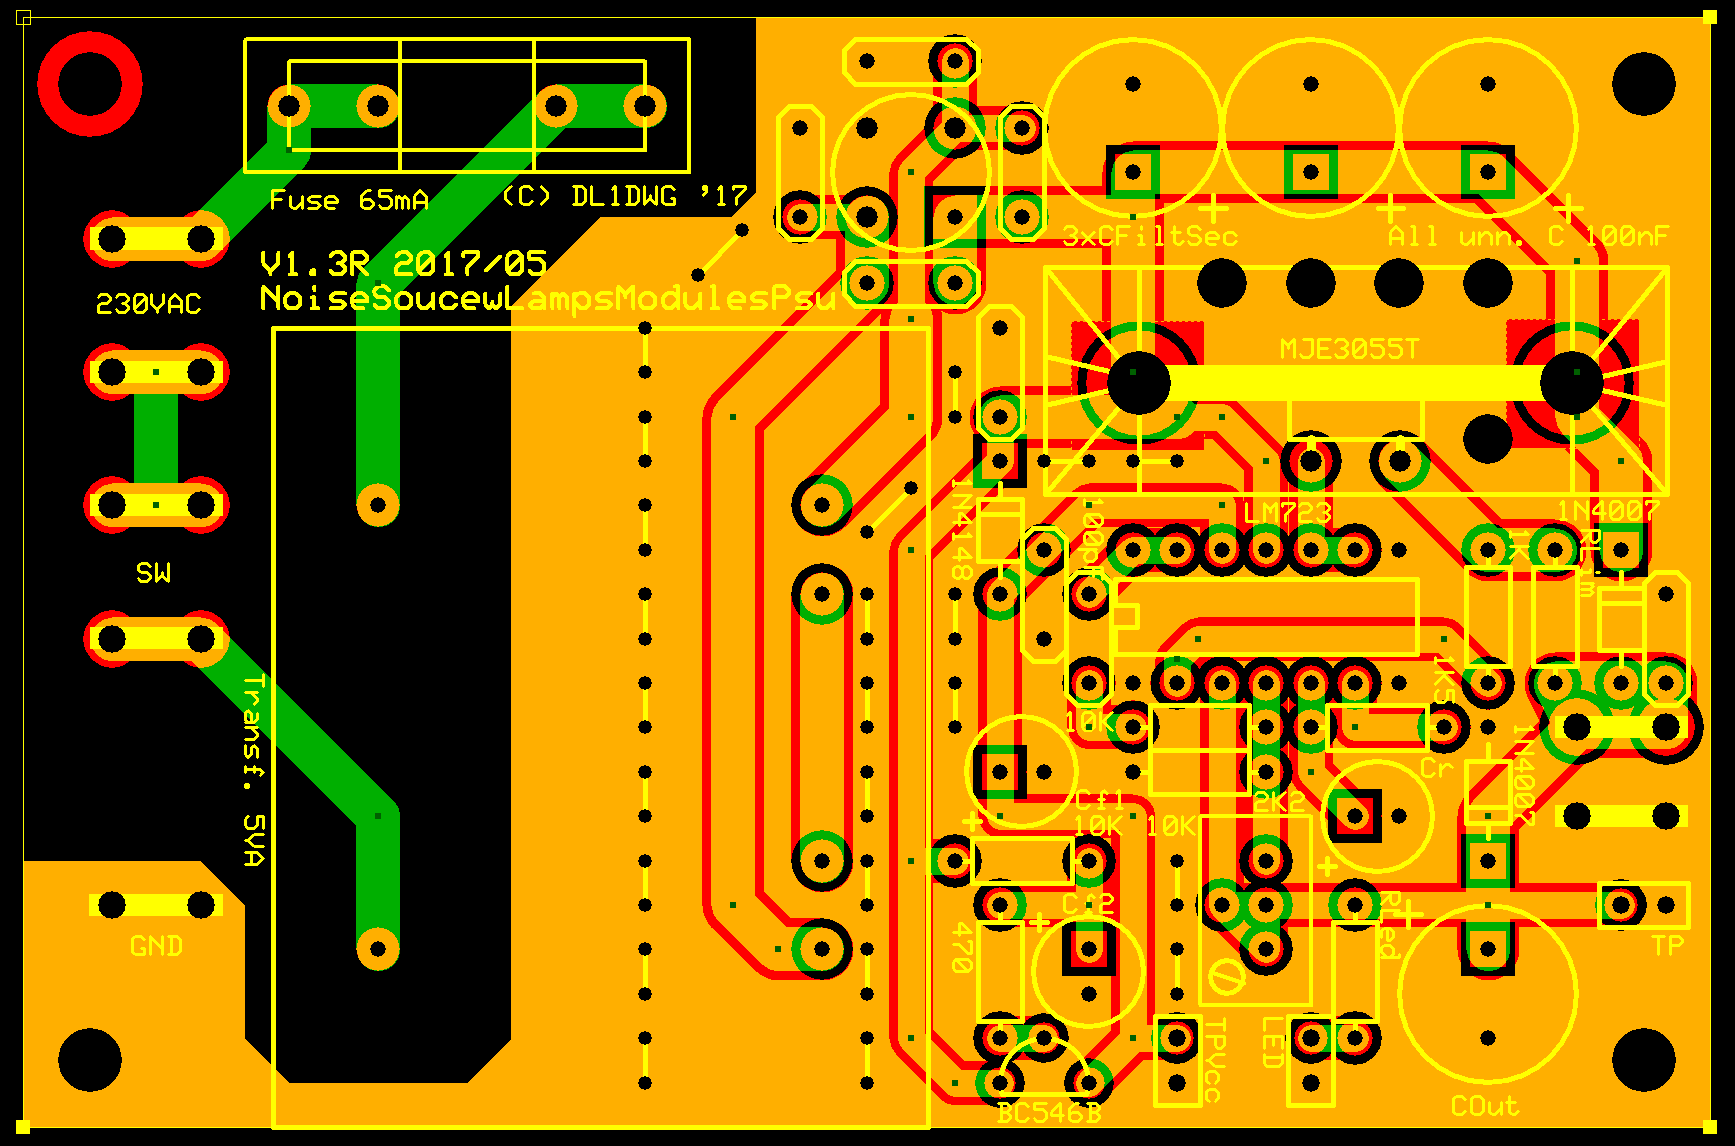 A Lamp Noise Head Electronic Projects For Fun Dc Power Supply Miniature Isolated Diagram And Circuit It Has Preregulator To Eliminate Ripple The Error Amp Rest Of Is Straightforward Some Anti Rfi Caps Are Added Around Rectifier